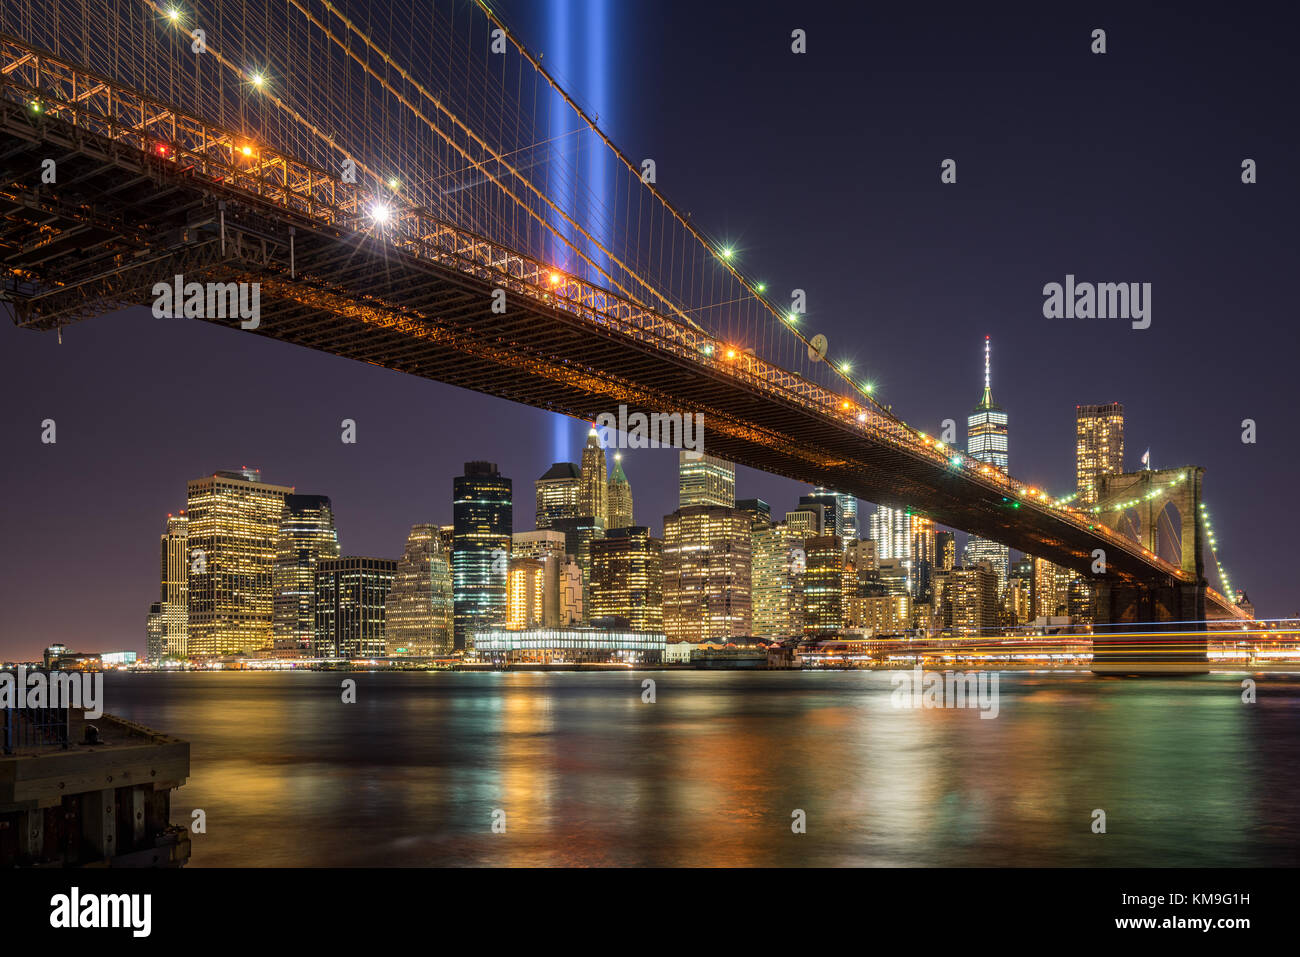 Tribute in Light with the Brooklyn Bridge and the skycrapers of Lower Manhattan. Financial District, New York City - Stock Image